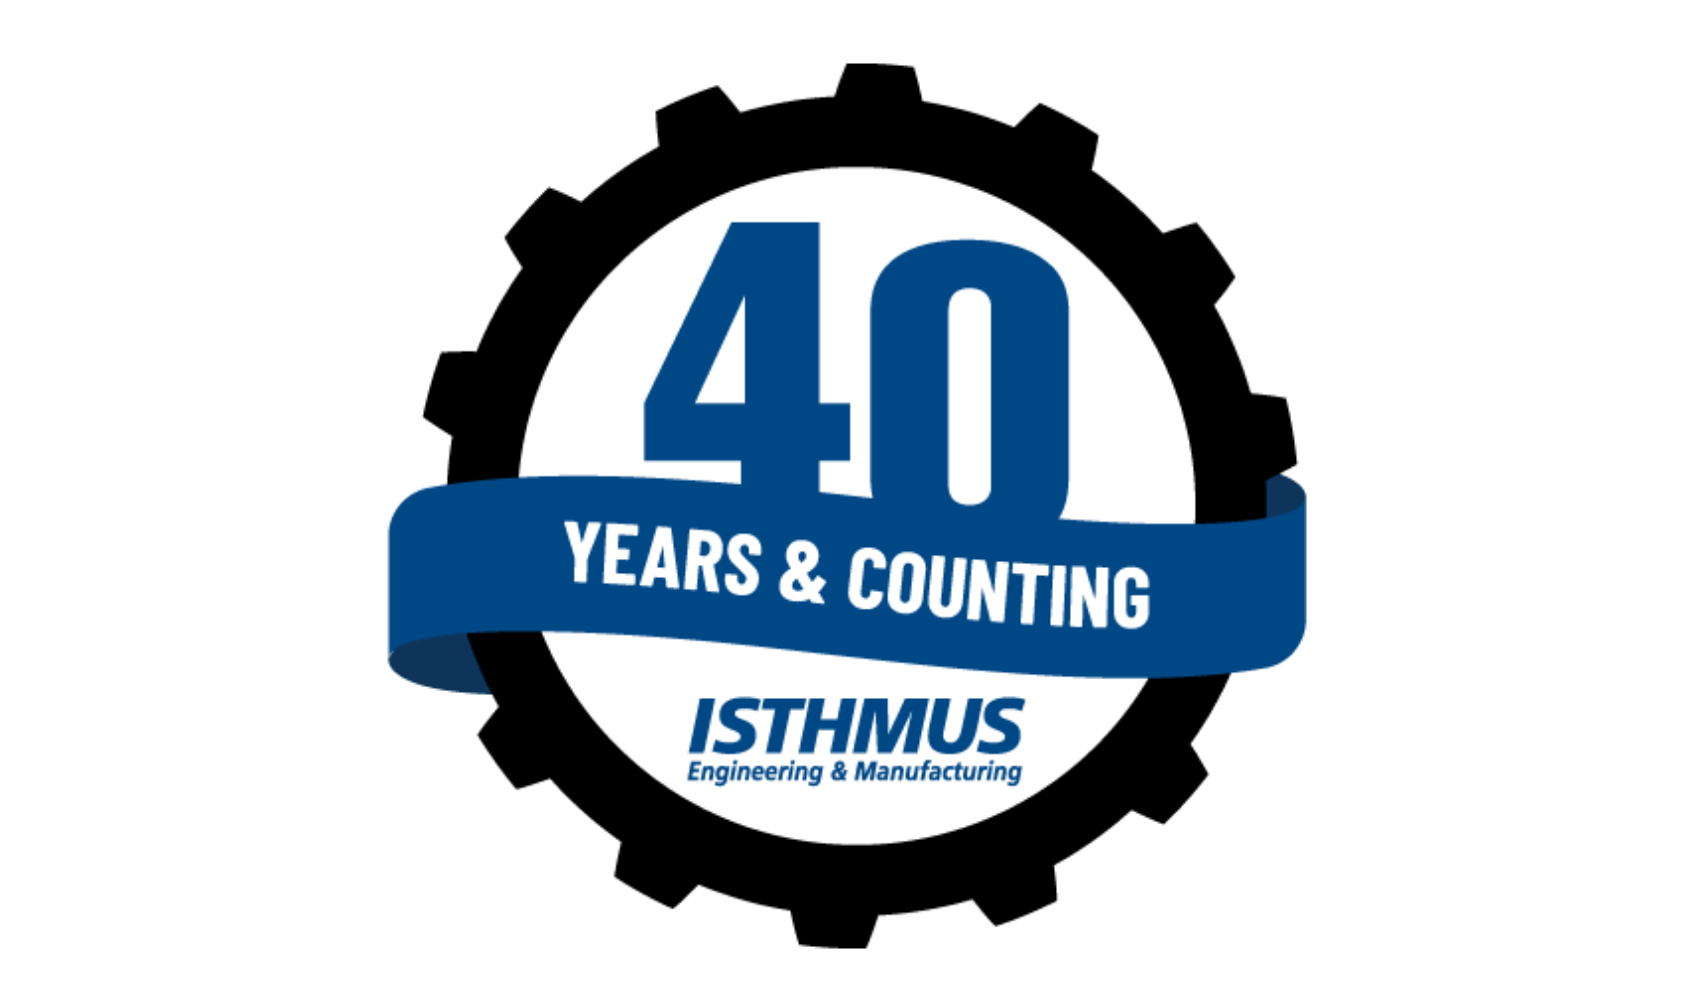 Isthmus Celebrates 40 Years